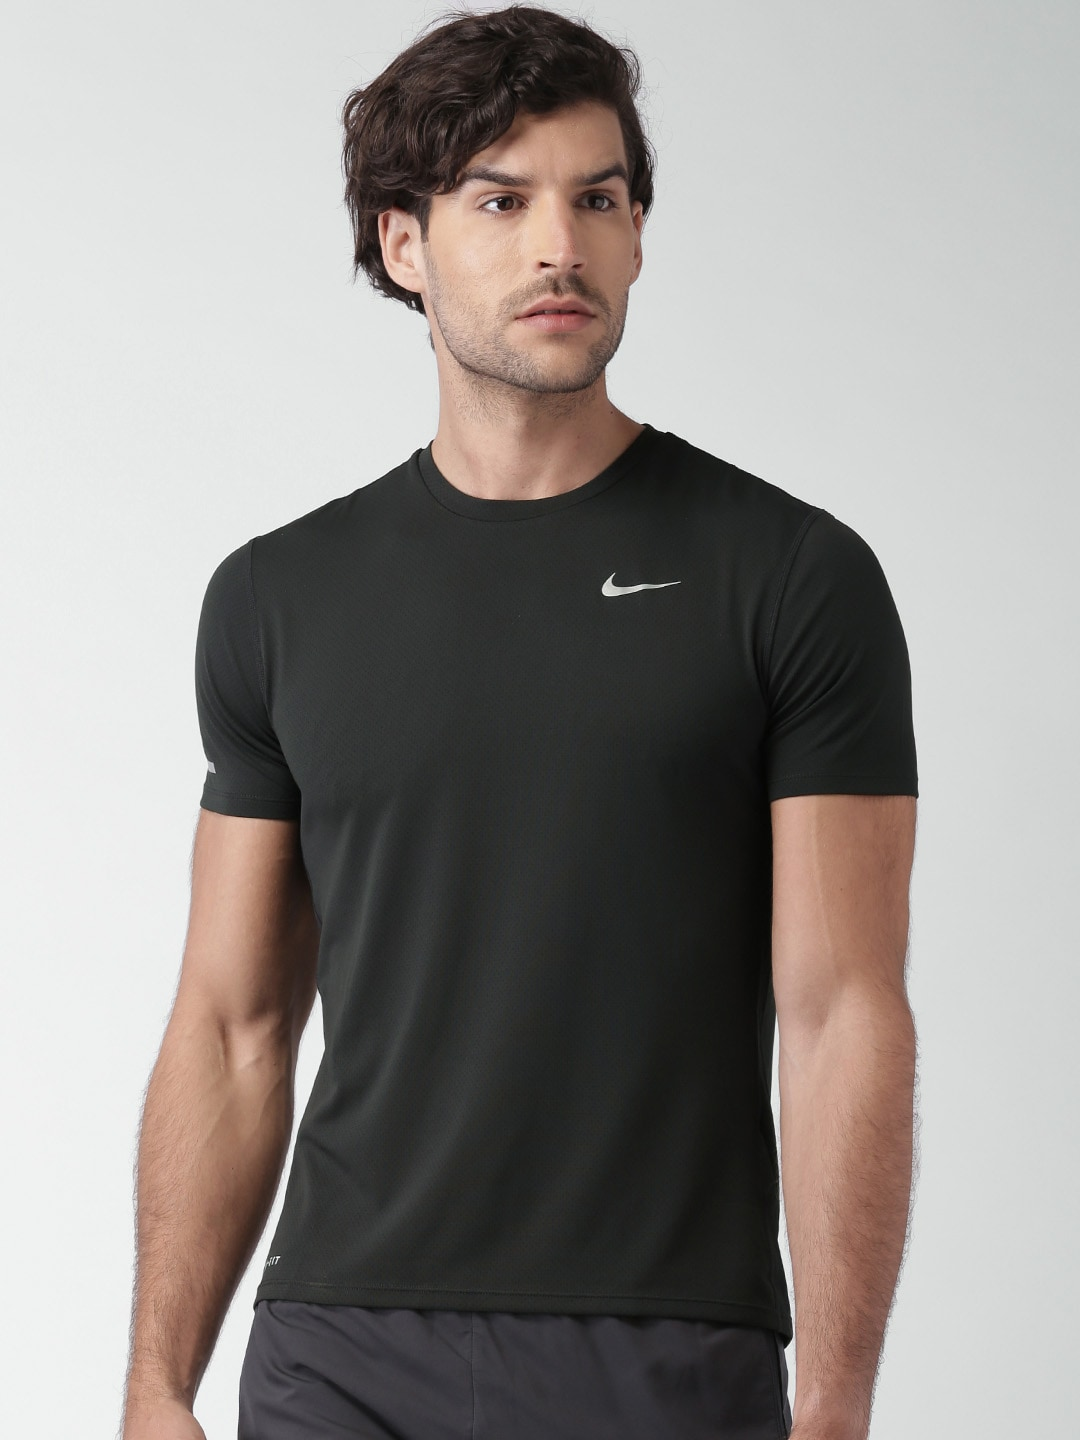 f30924cc46a7 Nike Shirt Price In India - DREAMWORKS